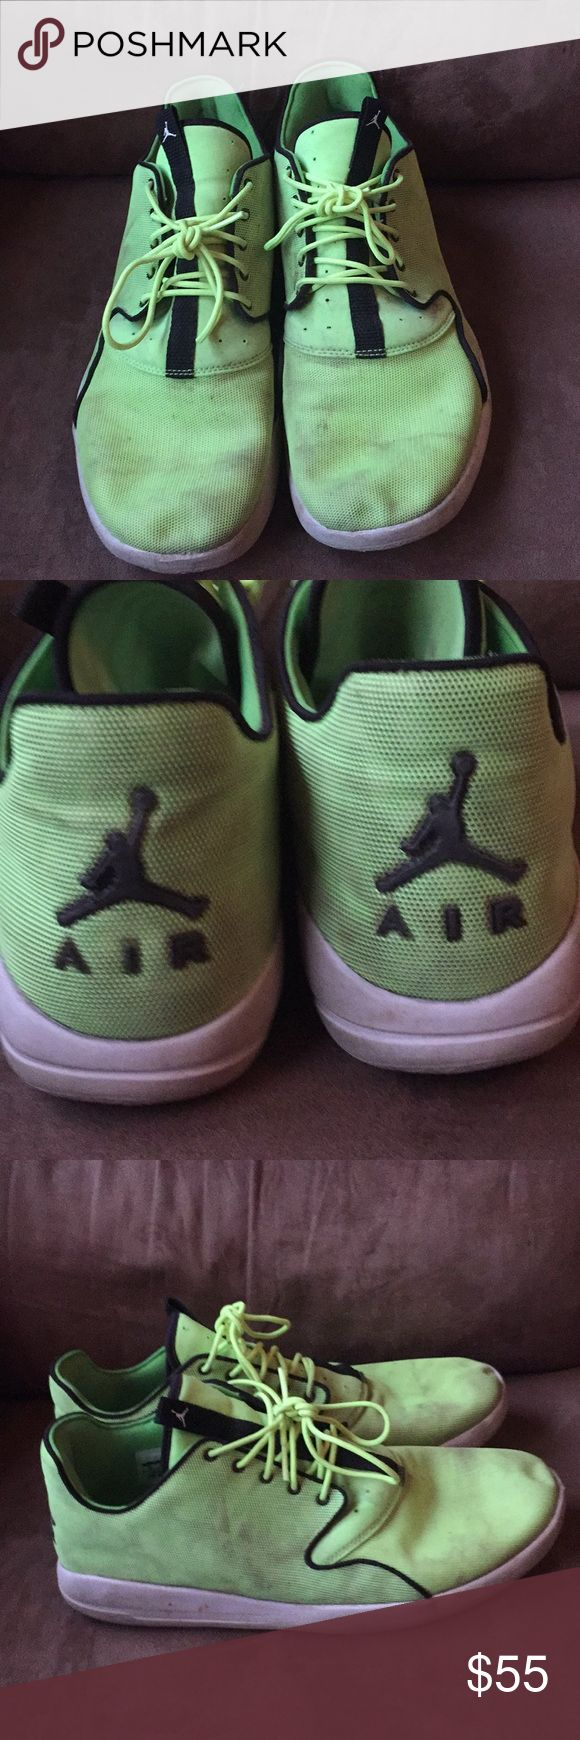 Men's Nike Jordan Tennis shoes Neon yellow/green.. definitely need a bath, but I hated to wash them myself for I'm good at ruining shoes when washing.. 😬 Nike Shoes Athletic Shoes